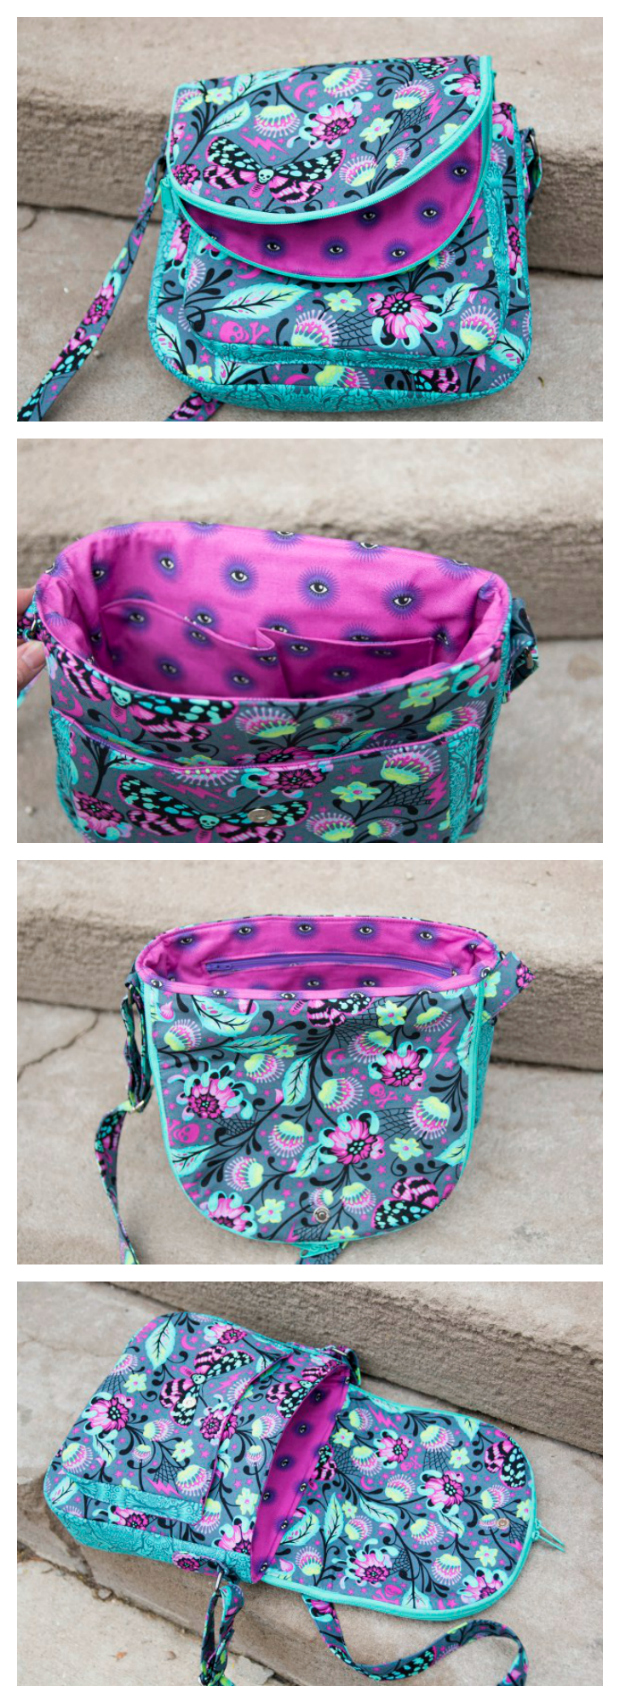 Satellite Bag - The perfect cross-body bag sewing pattern